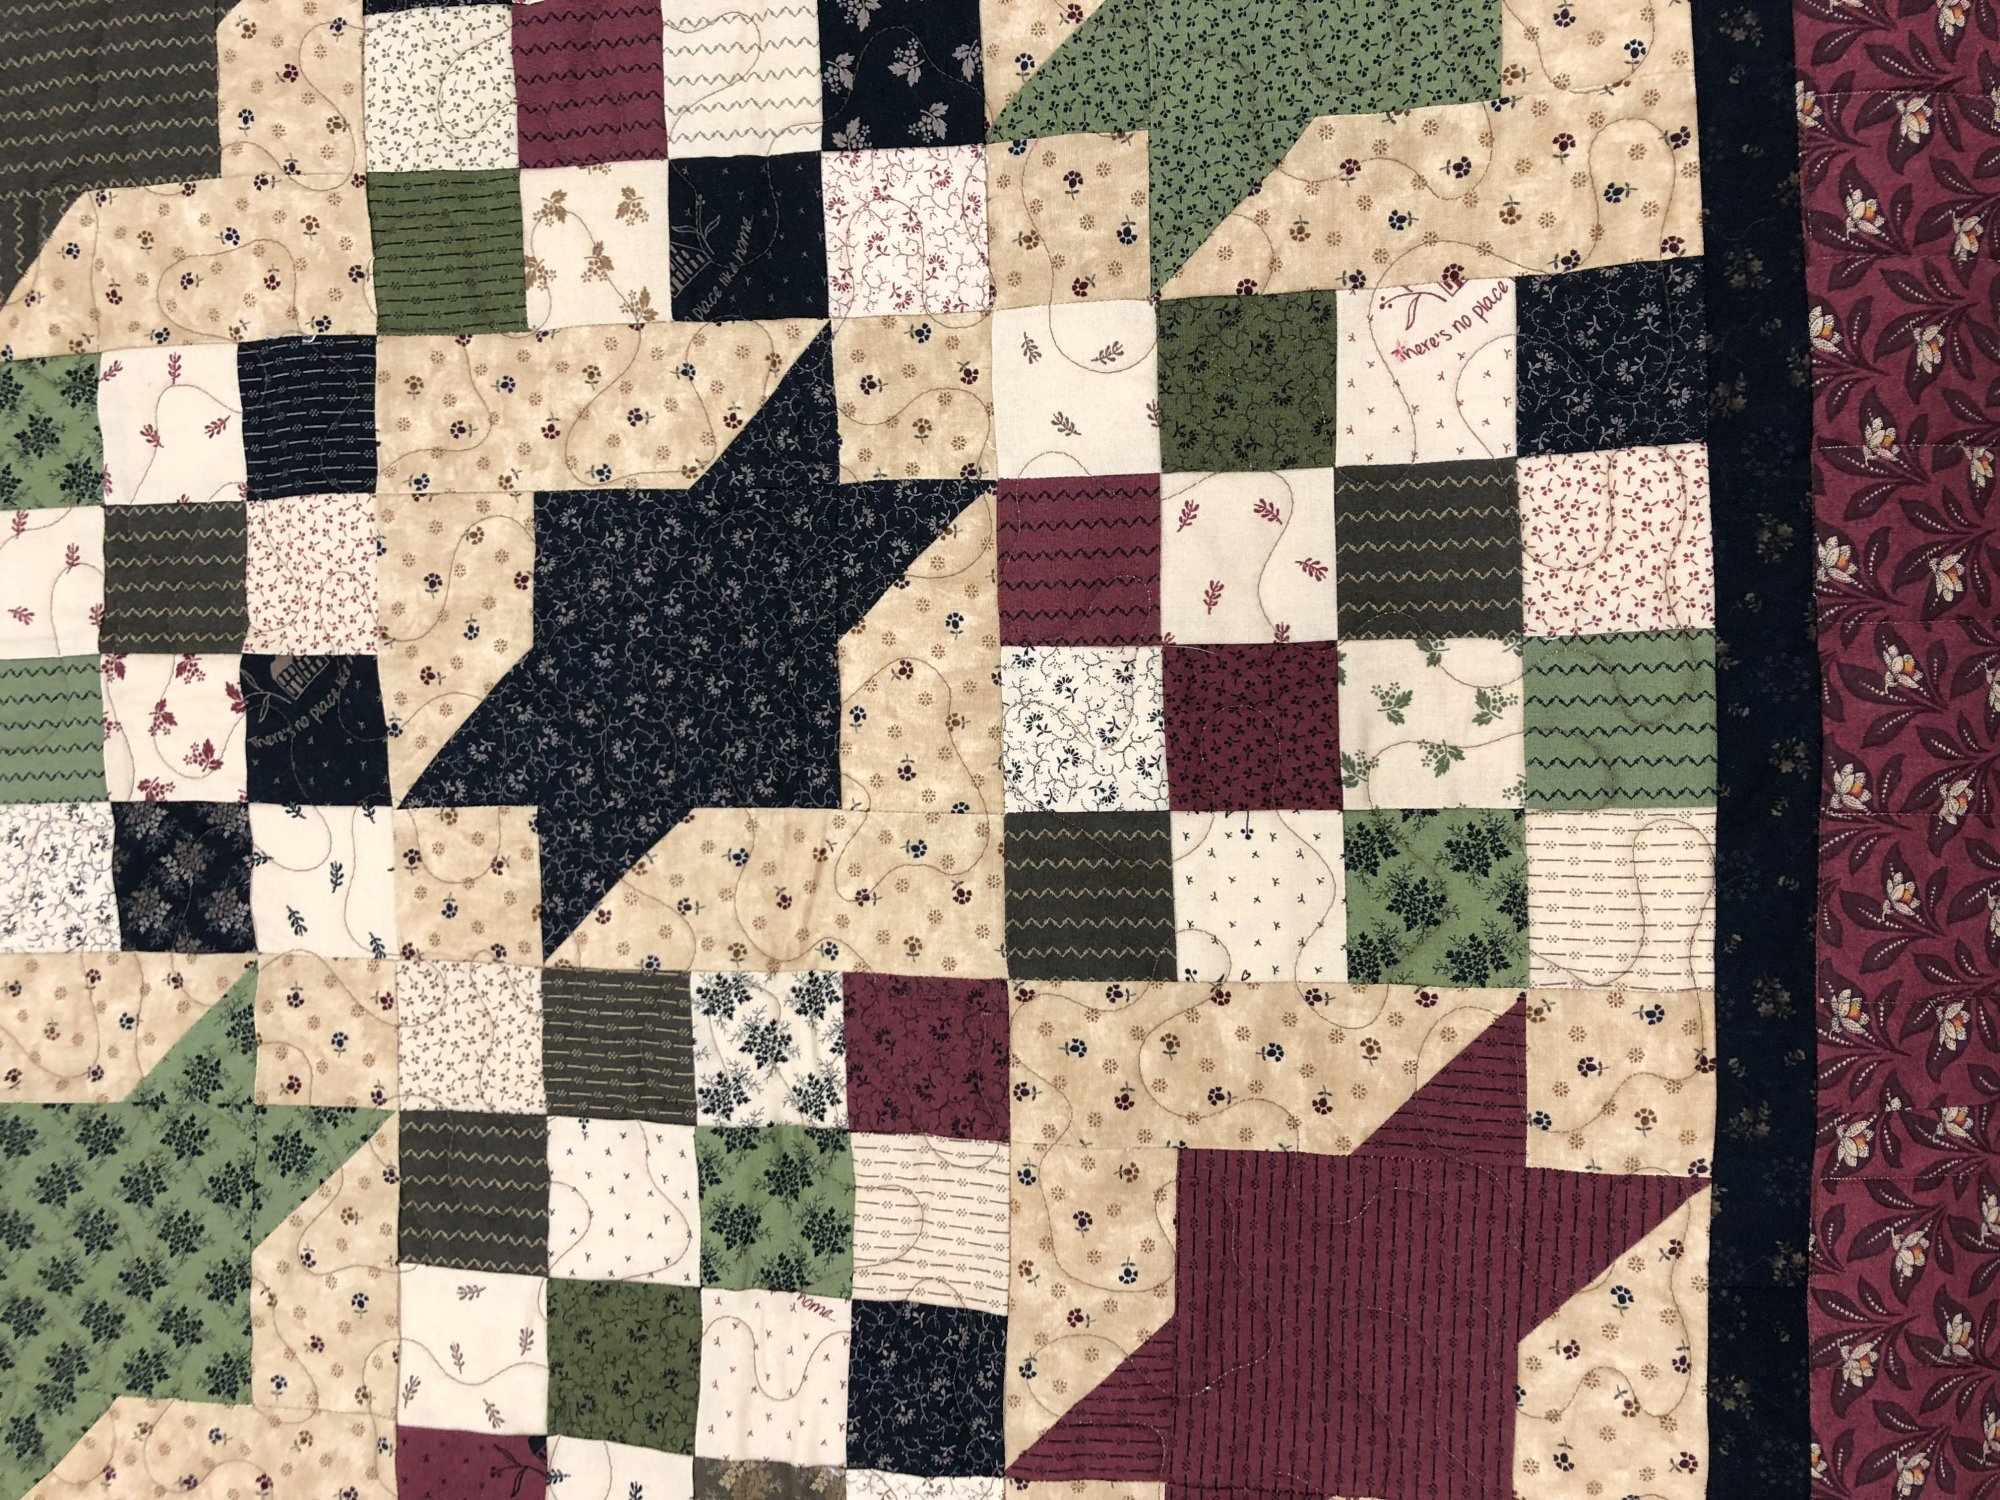 Quilted Samples